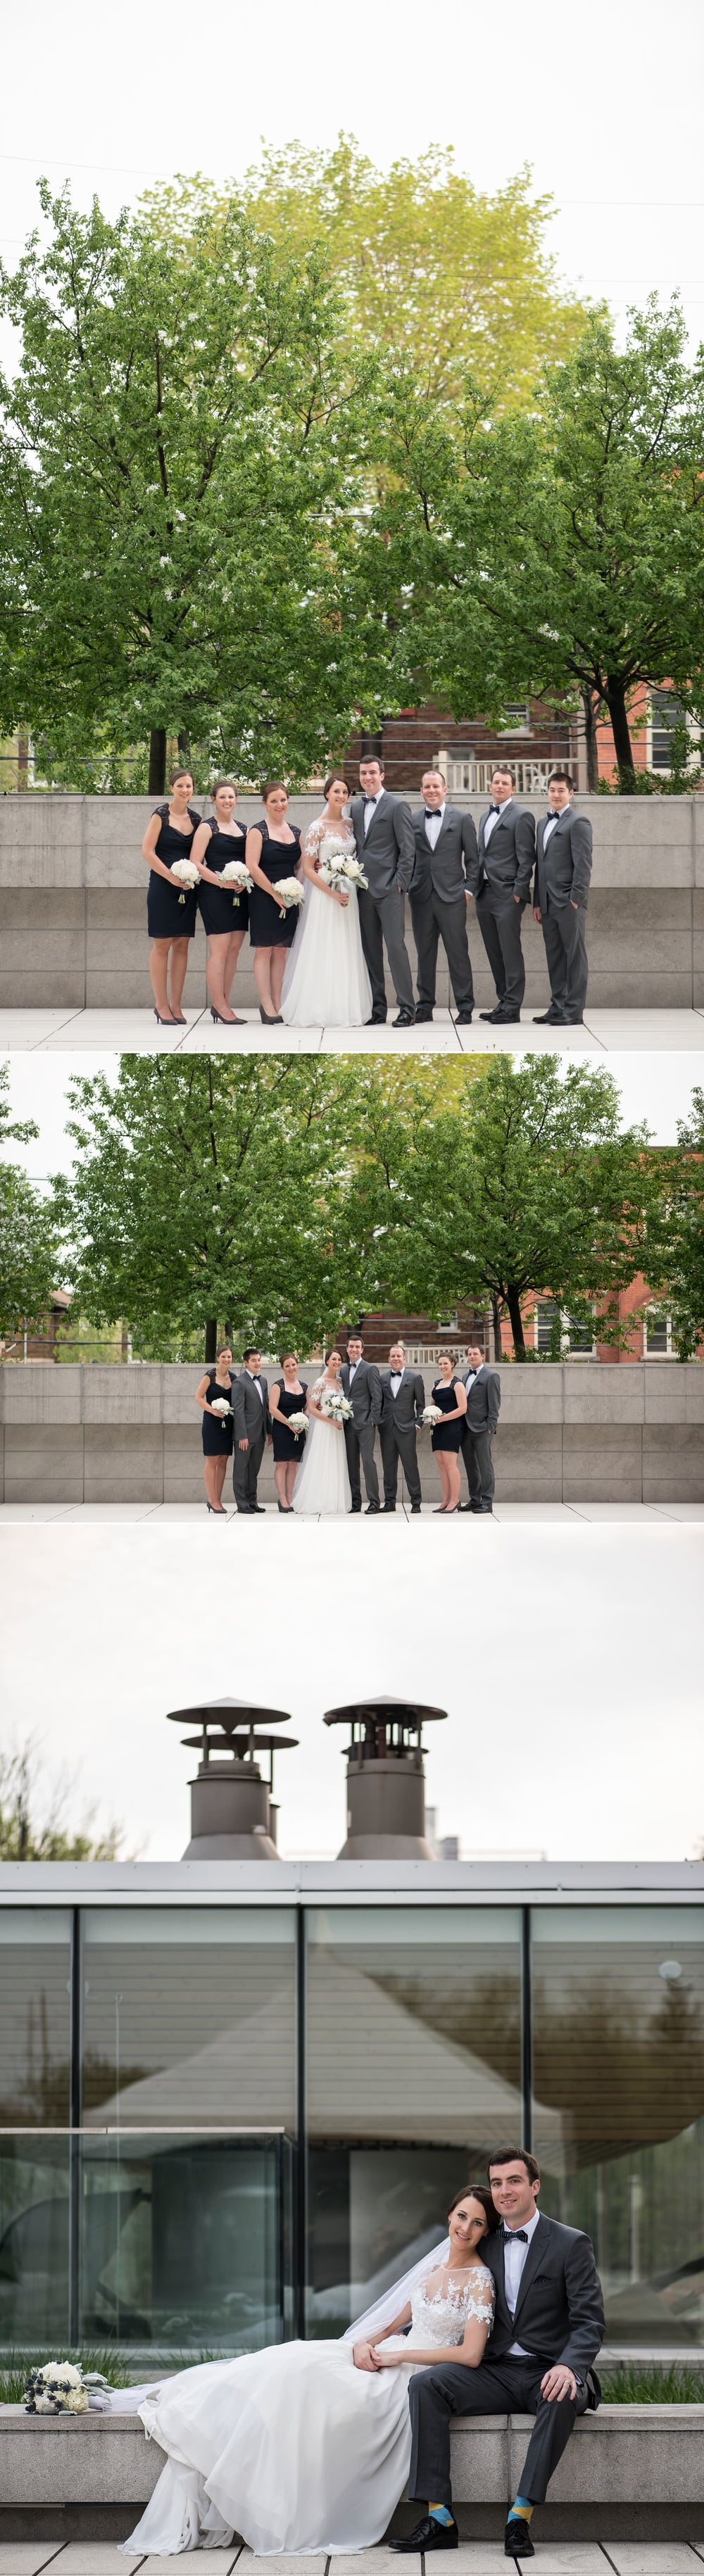 Wedding photos outside of the museum of nature in ottawa